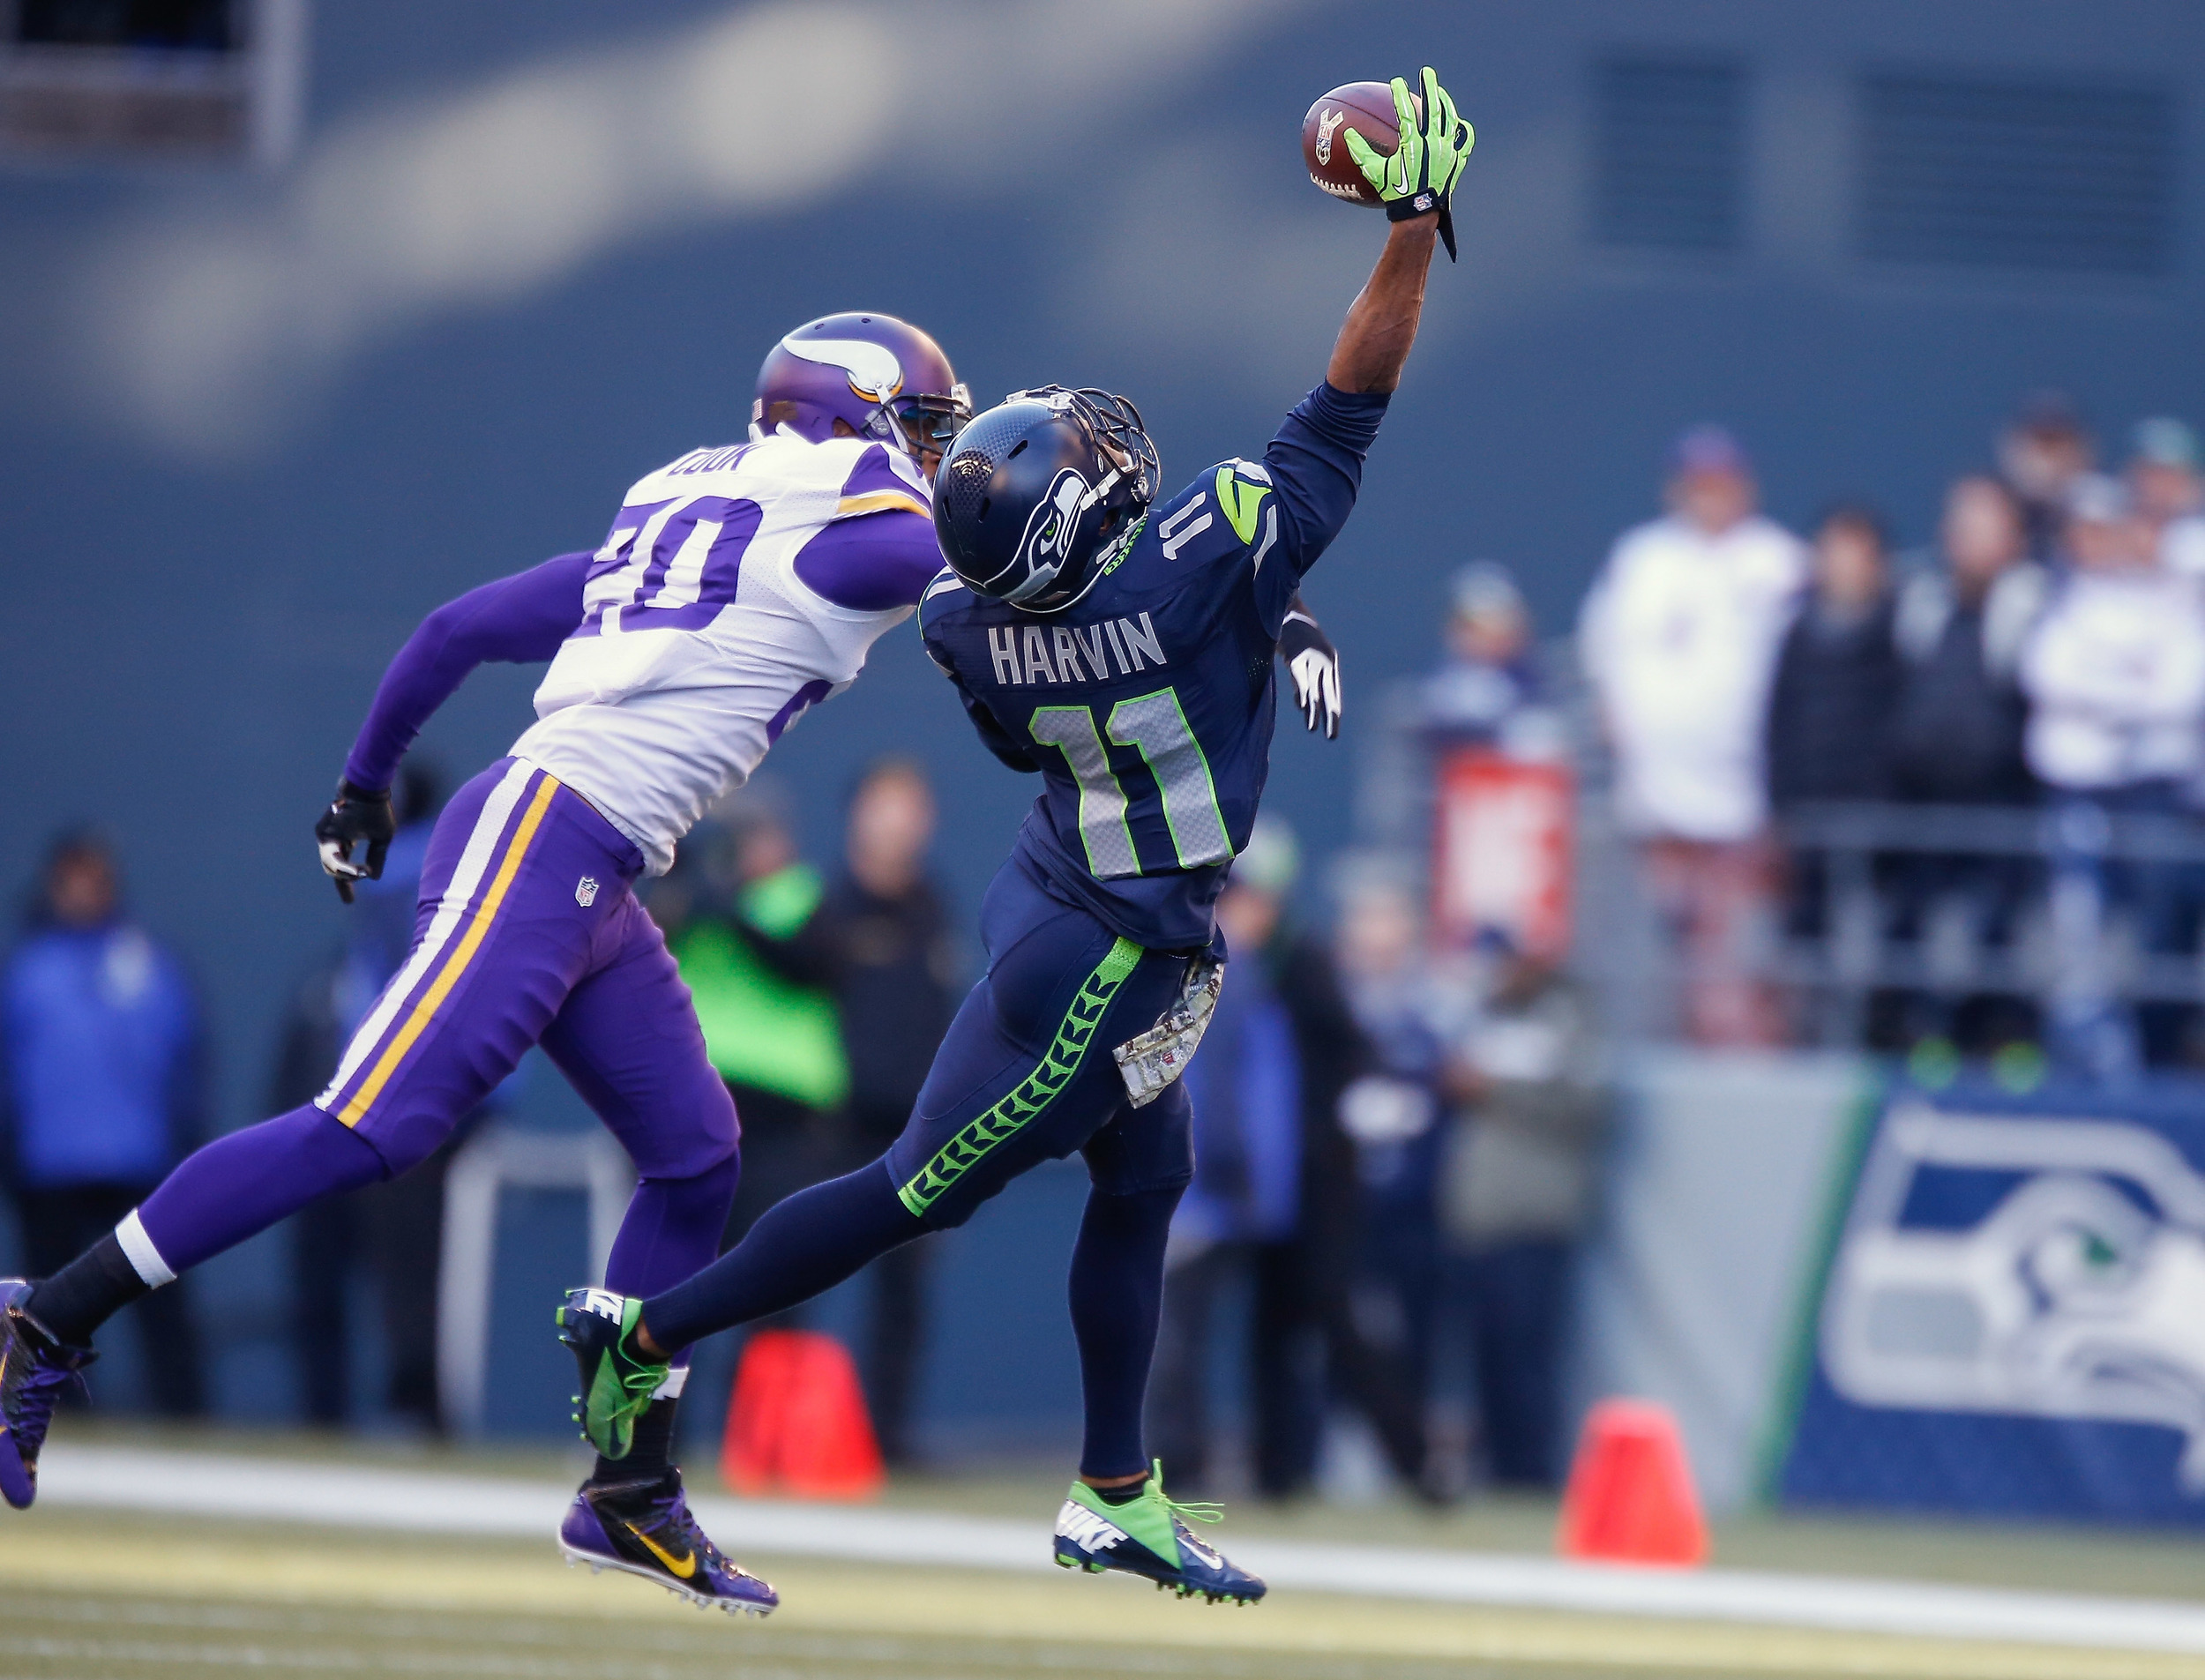 Percy Harvin intercepting the ball when he used to be a hot guy aka on the seahawks.jpg